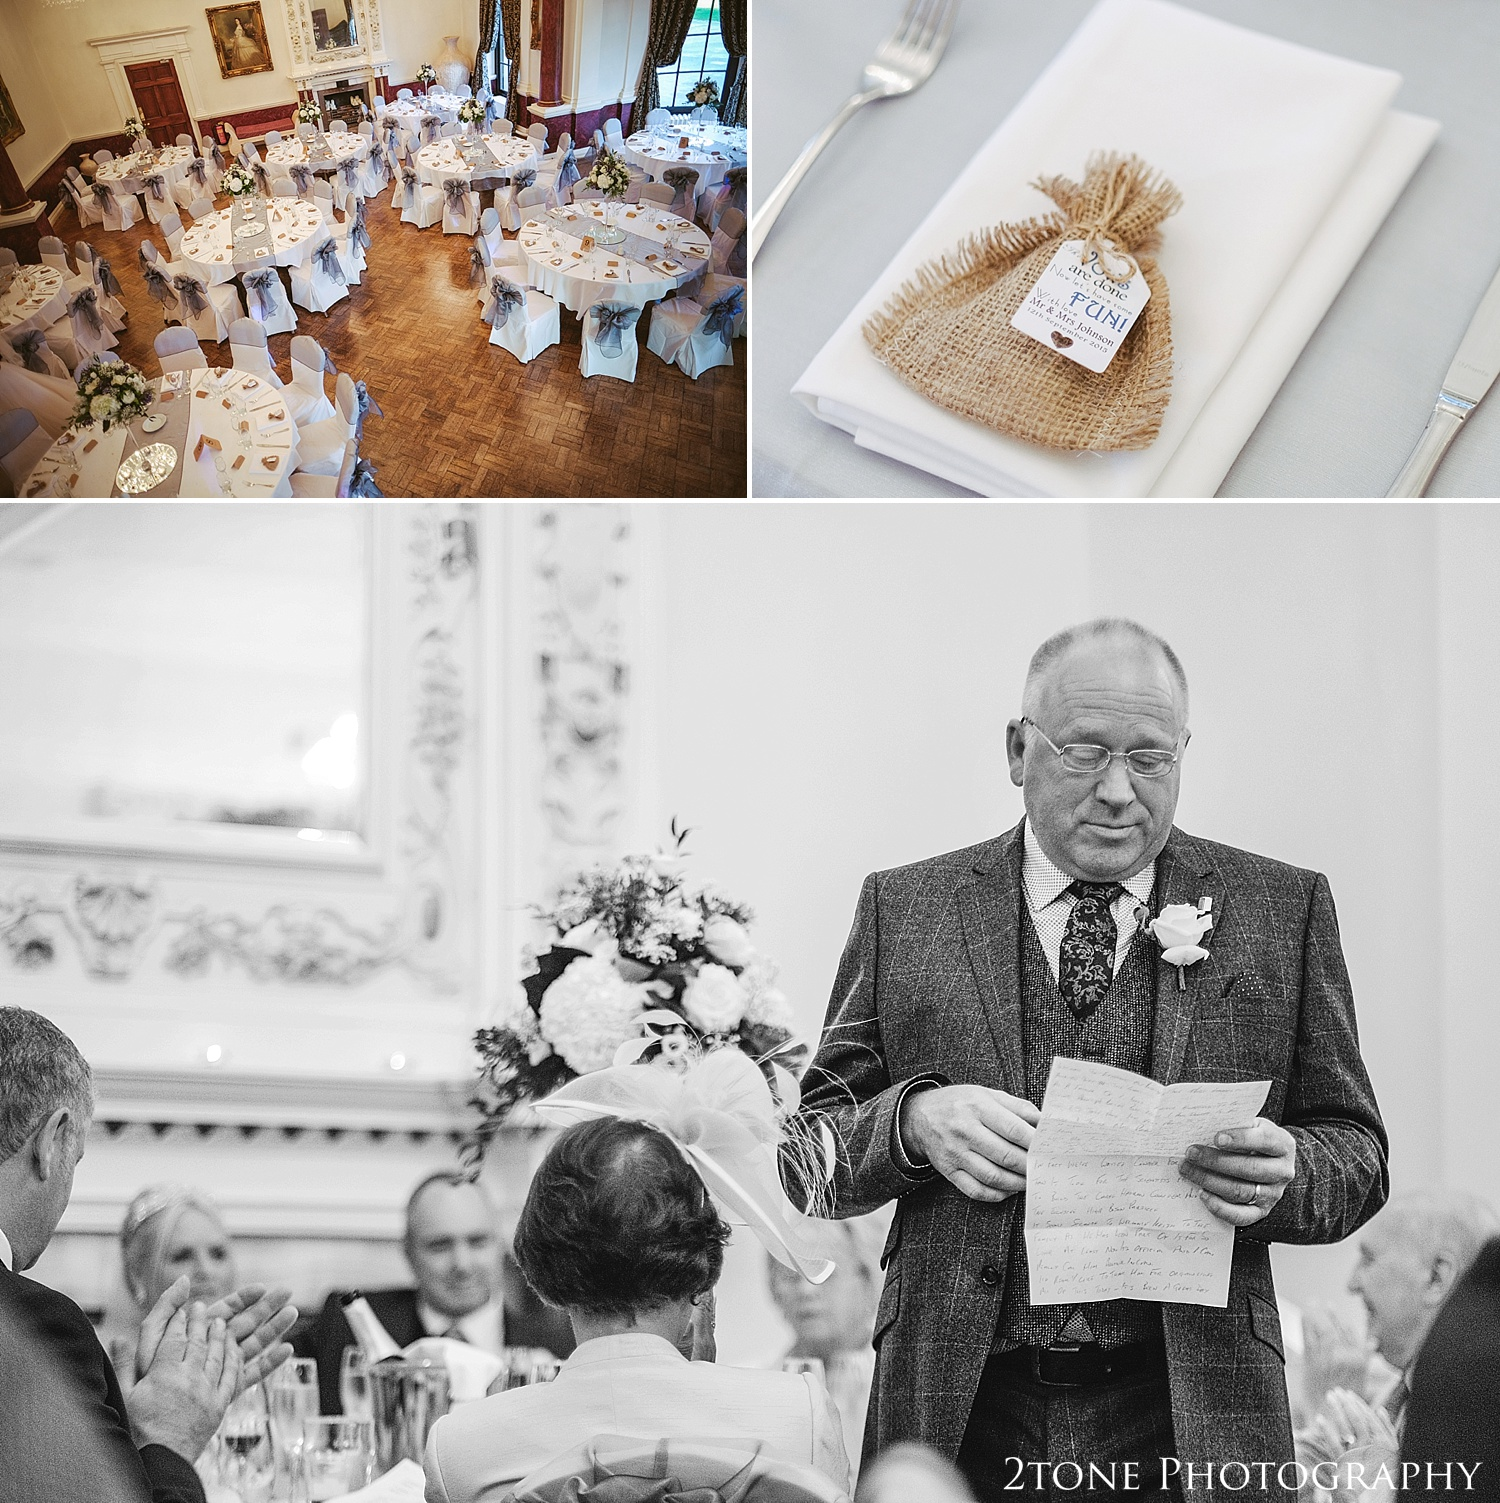 Beamish Museum and Beamish Hall wedding photography by durham based husband and wife wedding photography duo 2tone Photography www.2tonephotography.co.uk